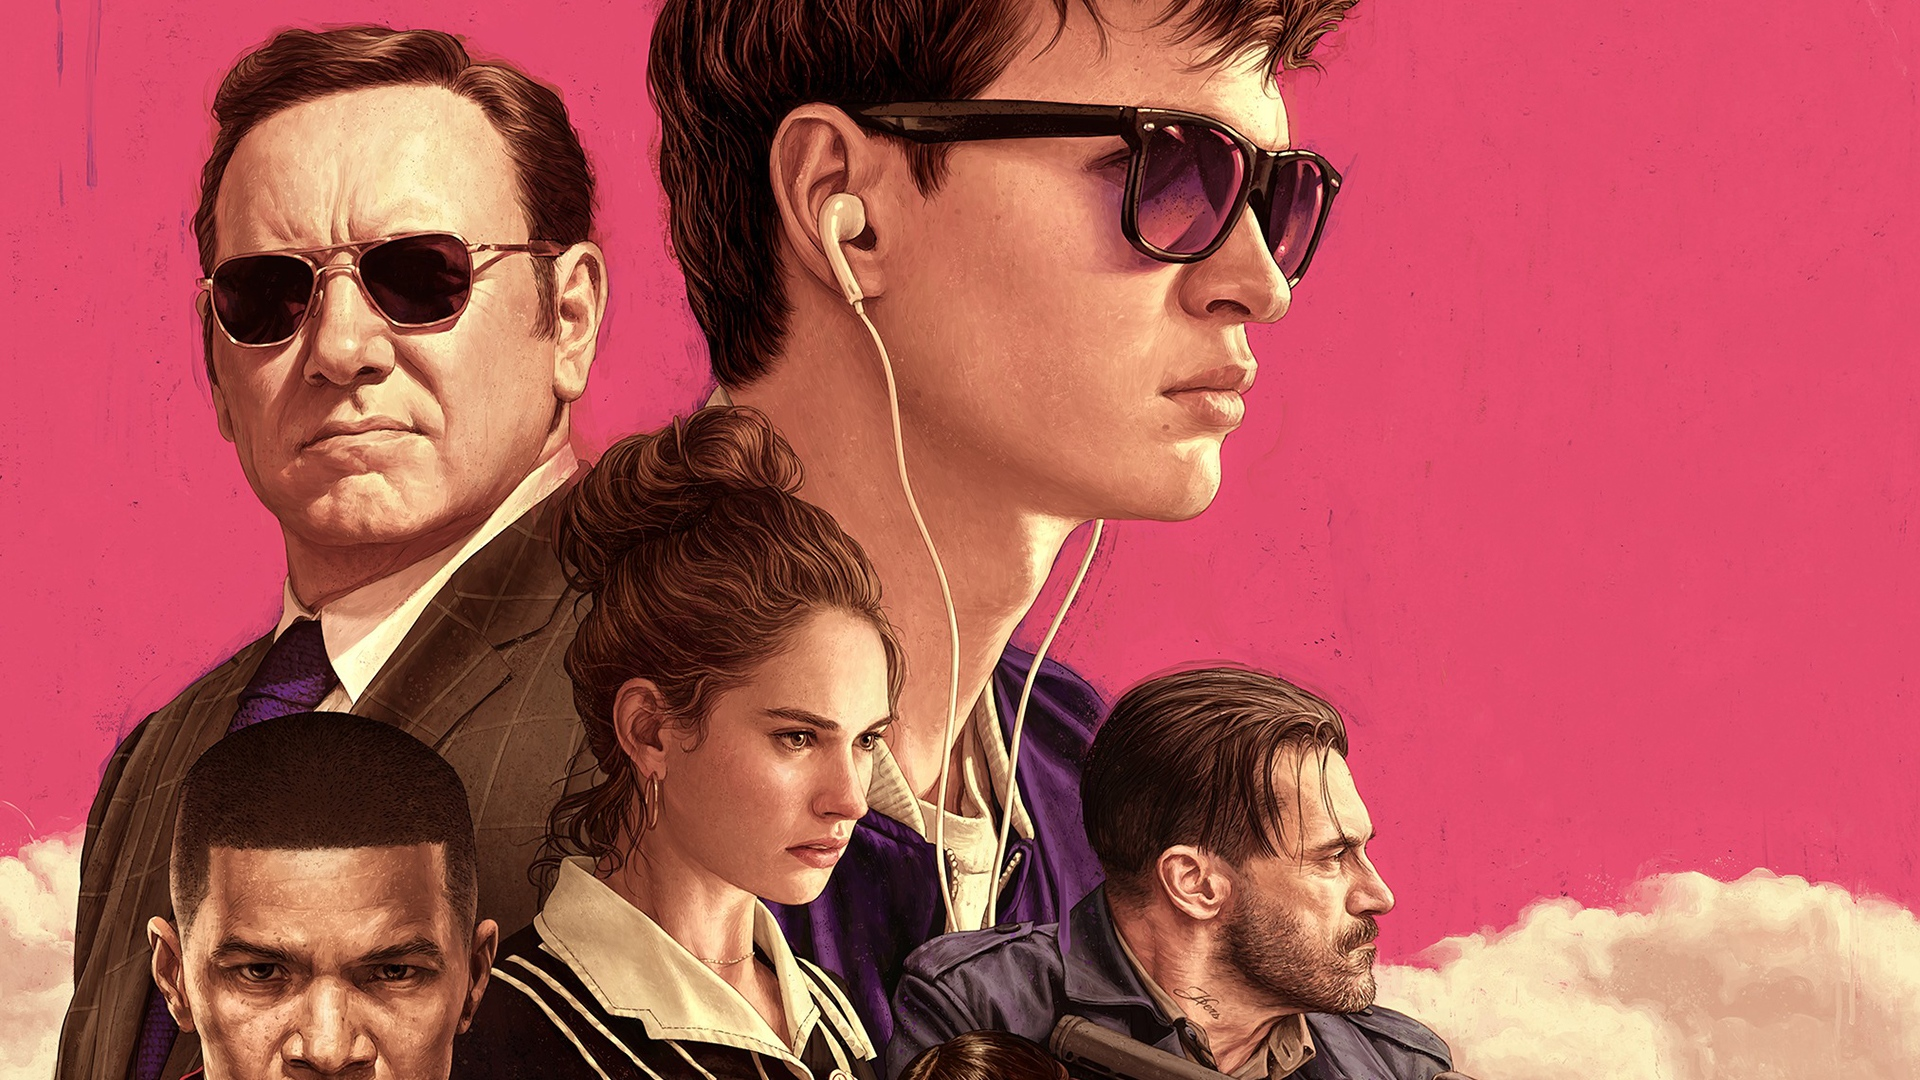 baby driver movie desktop wallpaper 61942 63827 hd wallpapers 1920x1080